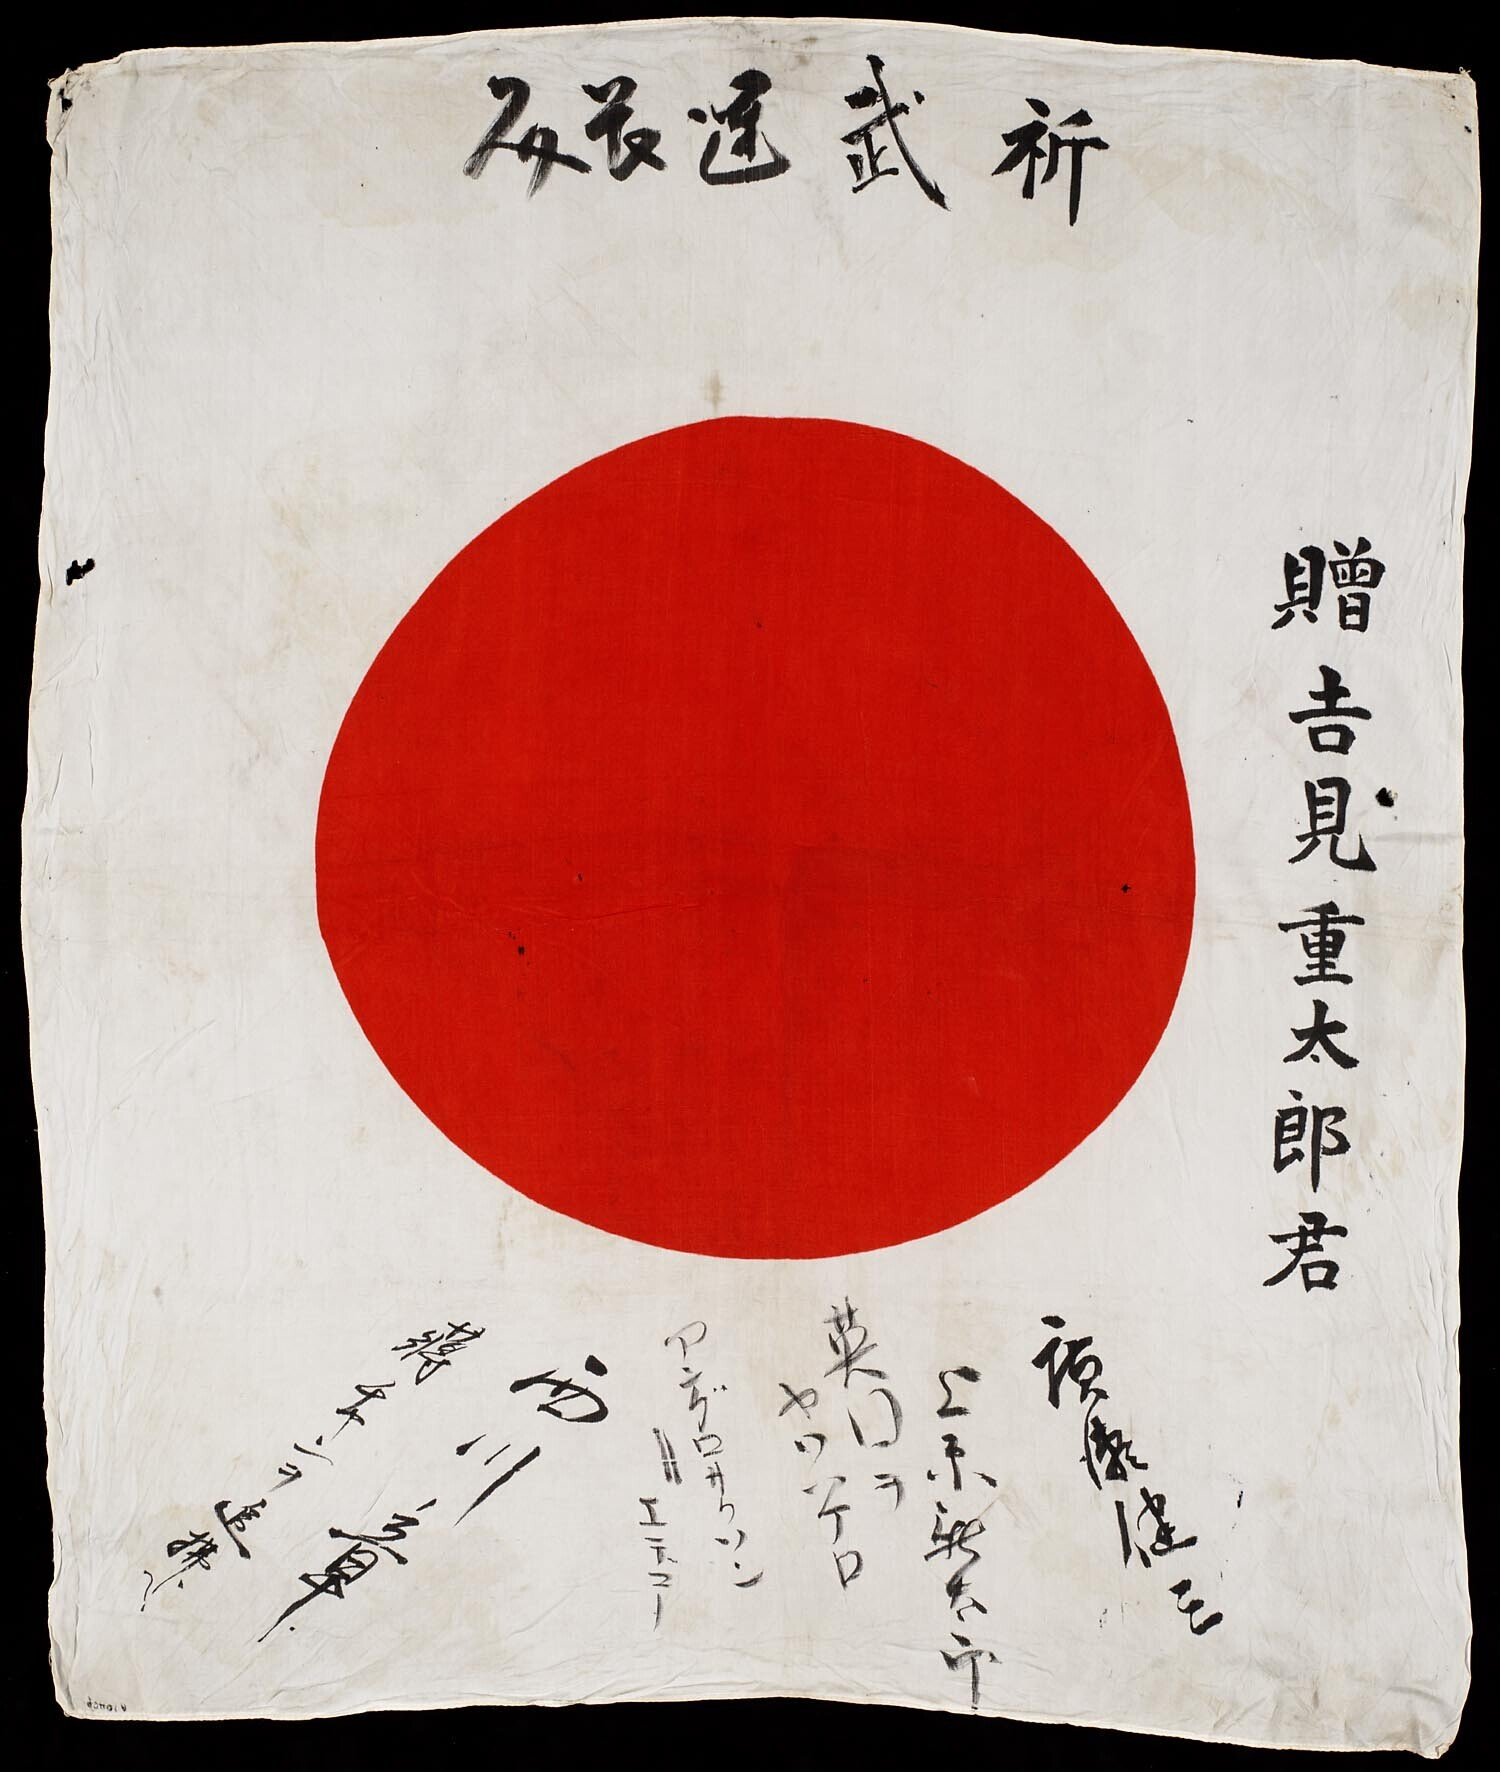 Japan - http://europeana.eu/portal/record/2021657/90401__1_2_.html. Museon - http://cc.museon.nl/default.aspx#id=%2090401%20(1/2). CC BY - http://creativecommons.org/licenses/by/3.0/